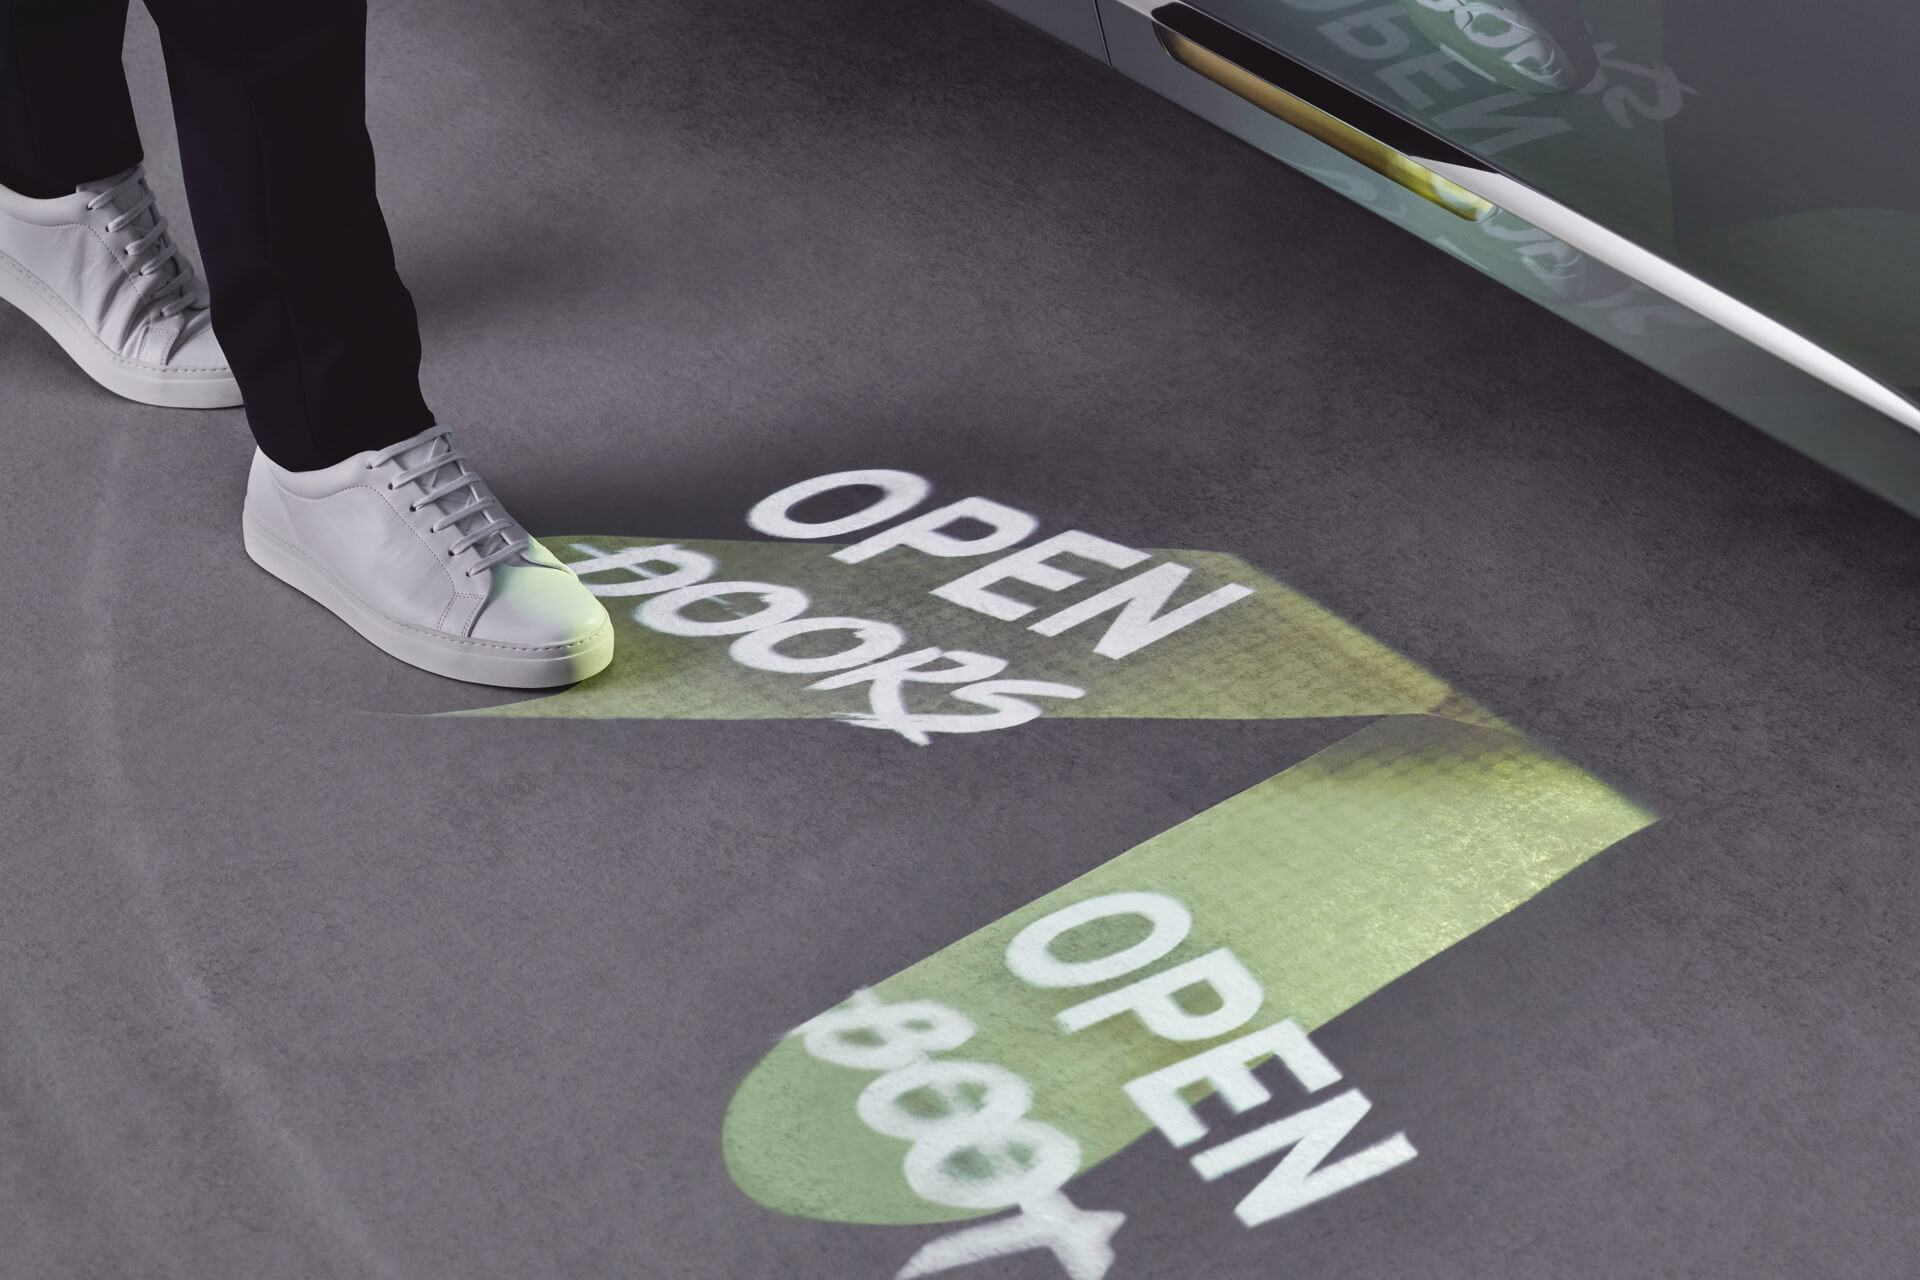 Projected foot controls on the ground beside a MINI VISION NEXT 100 – OPEN DOORS, OPEN BOOT.